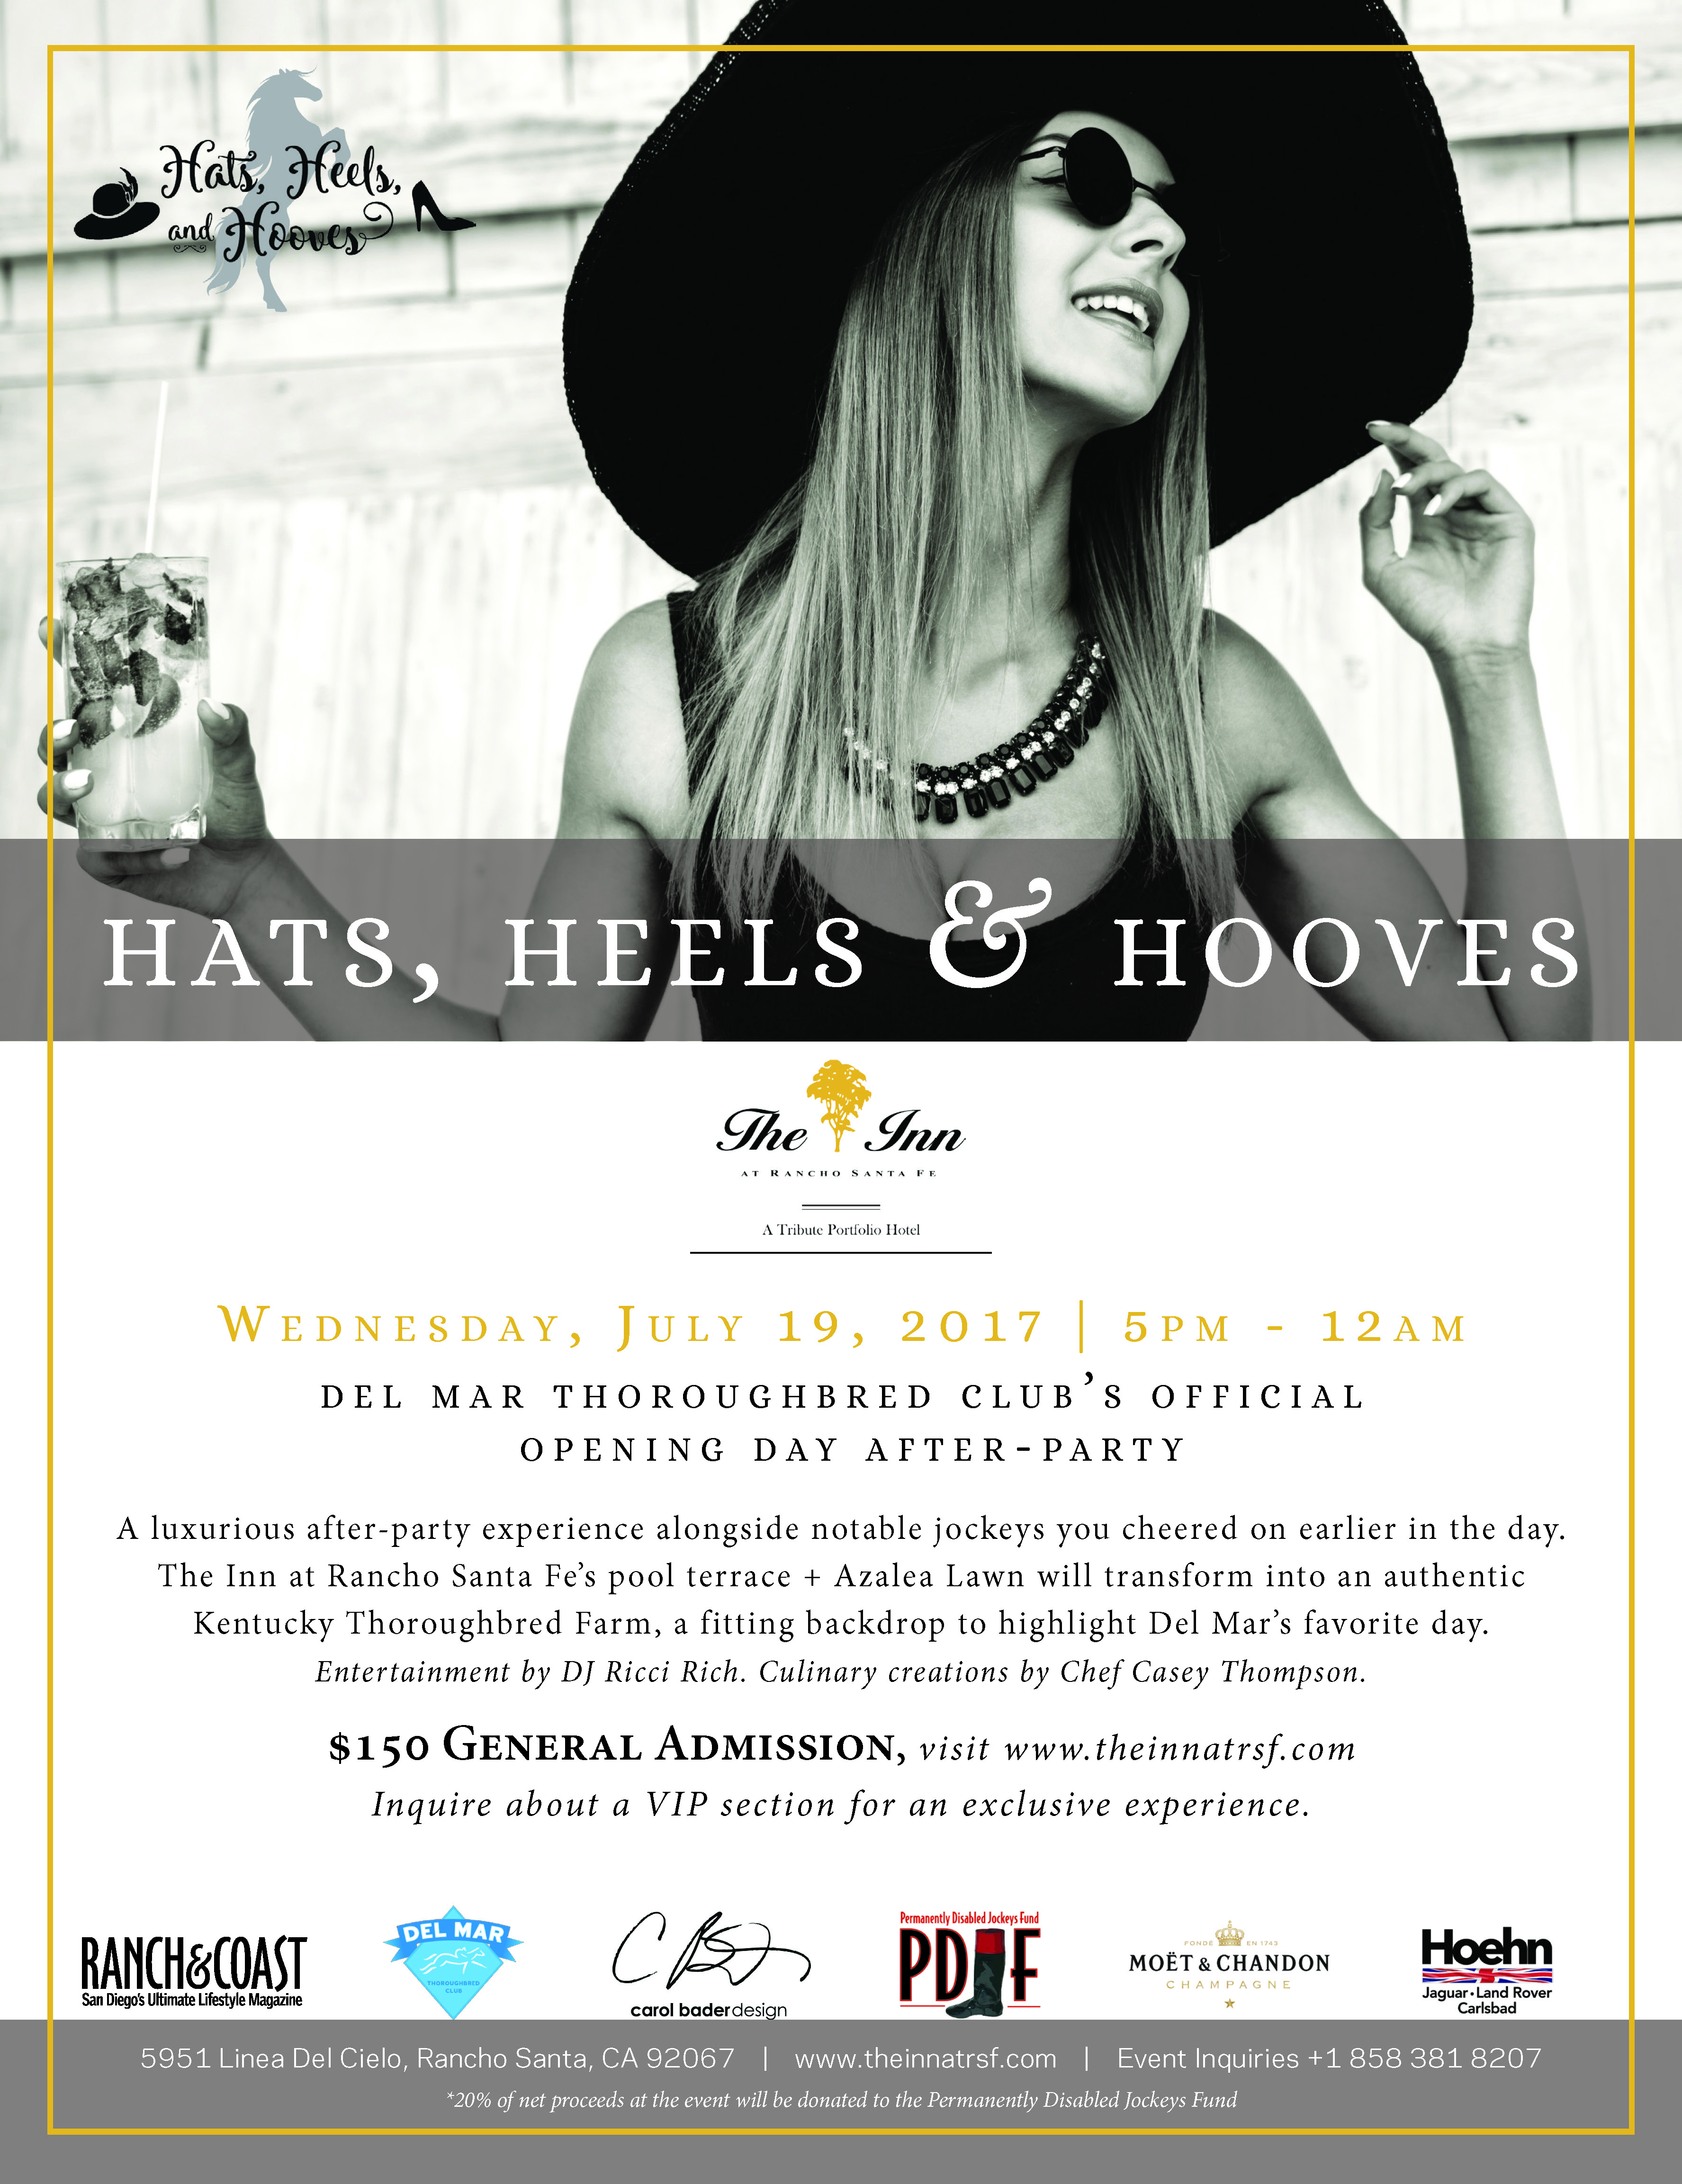 Hats, Heels & Hooves Party